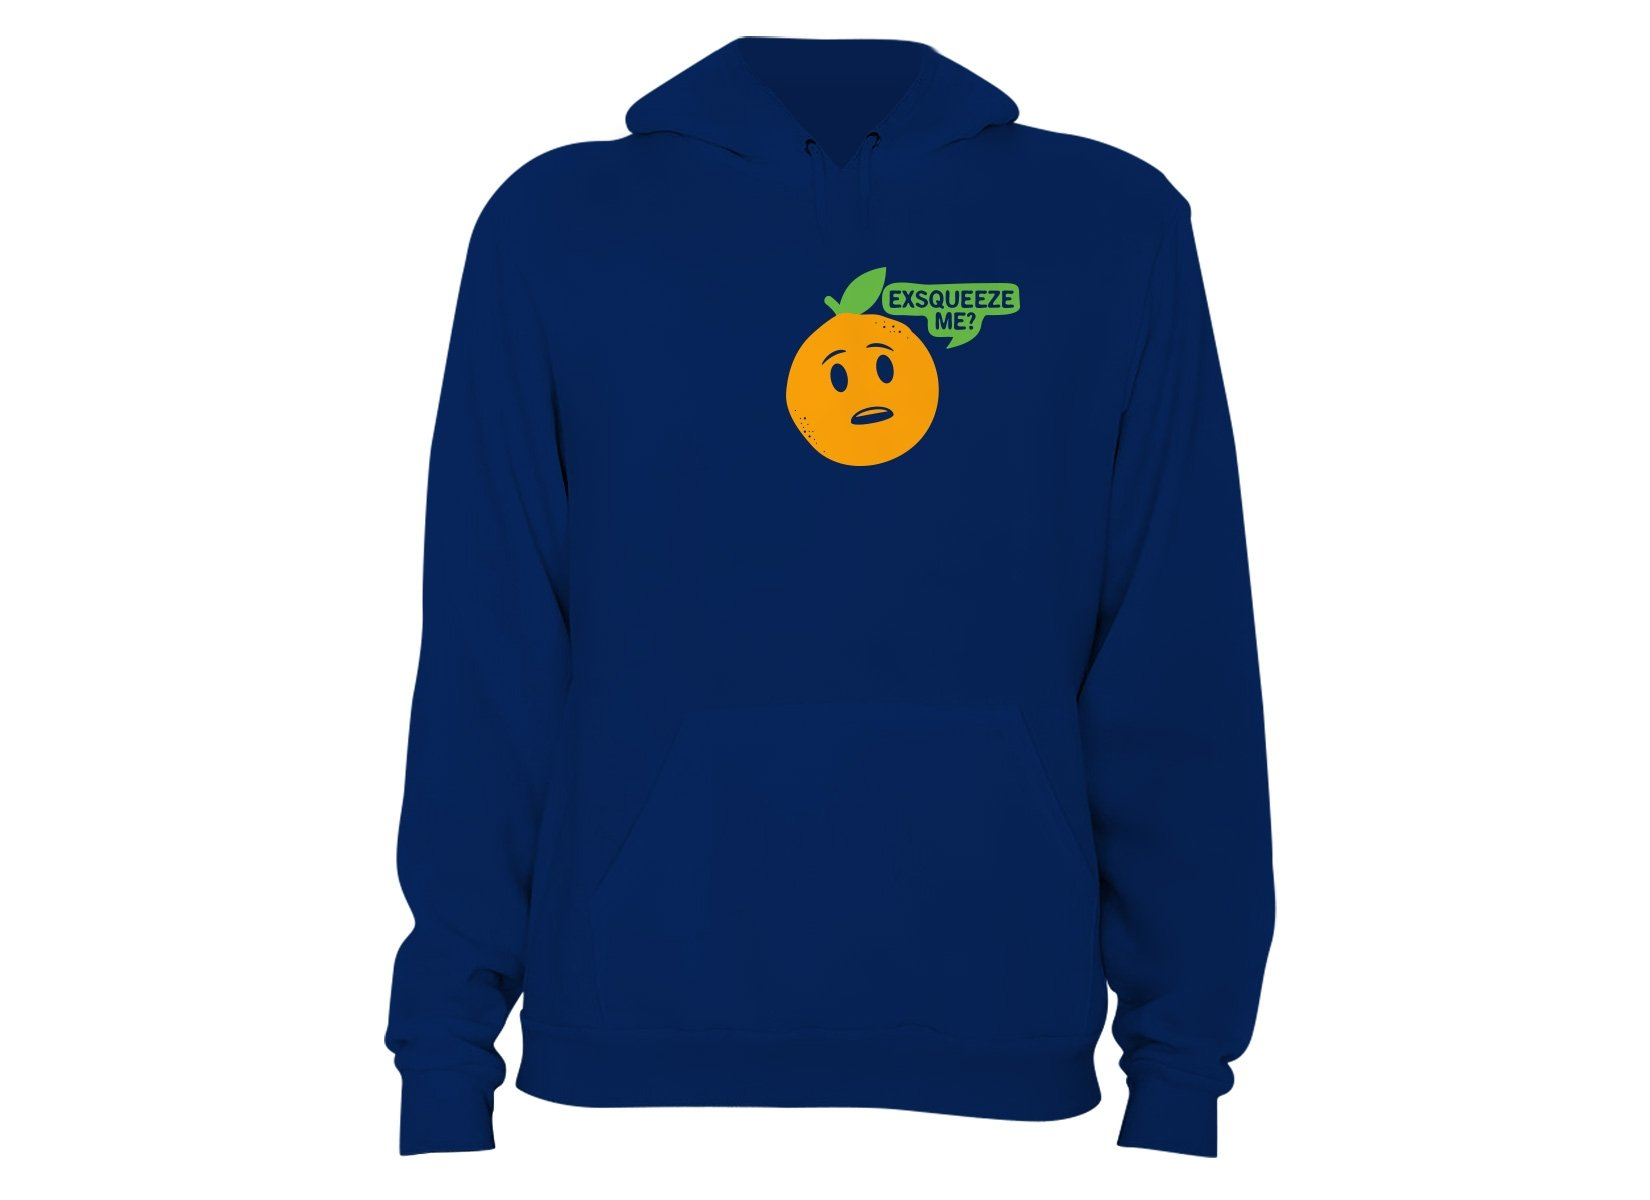 Exsqueeze Me? on Hoodie